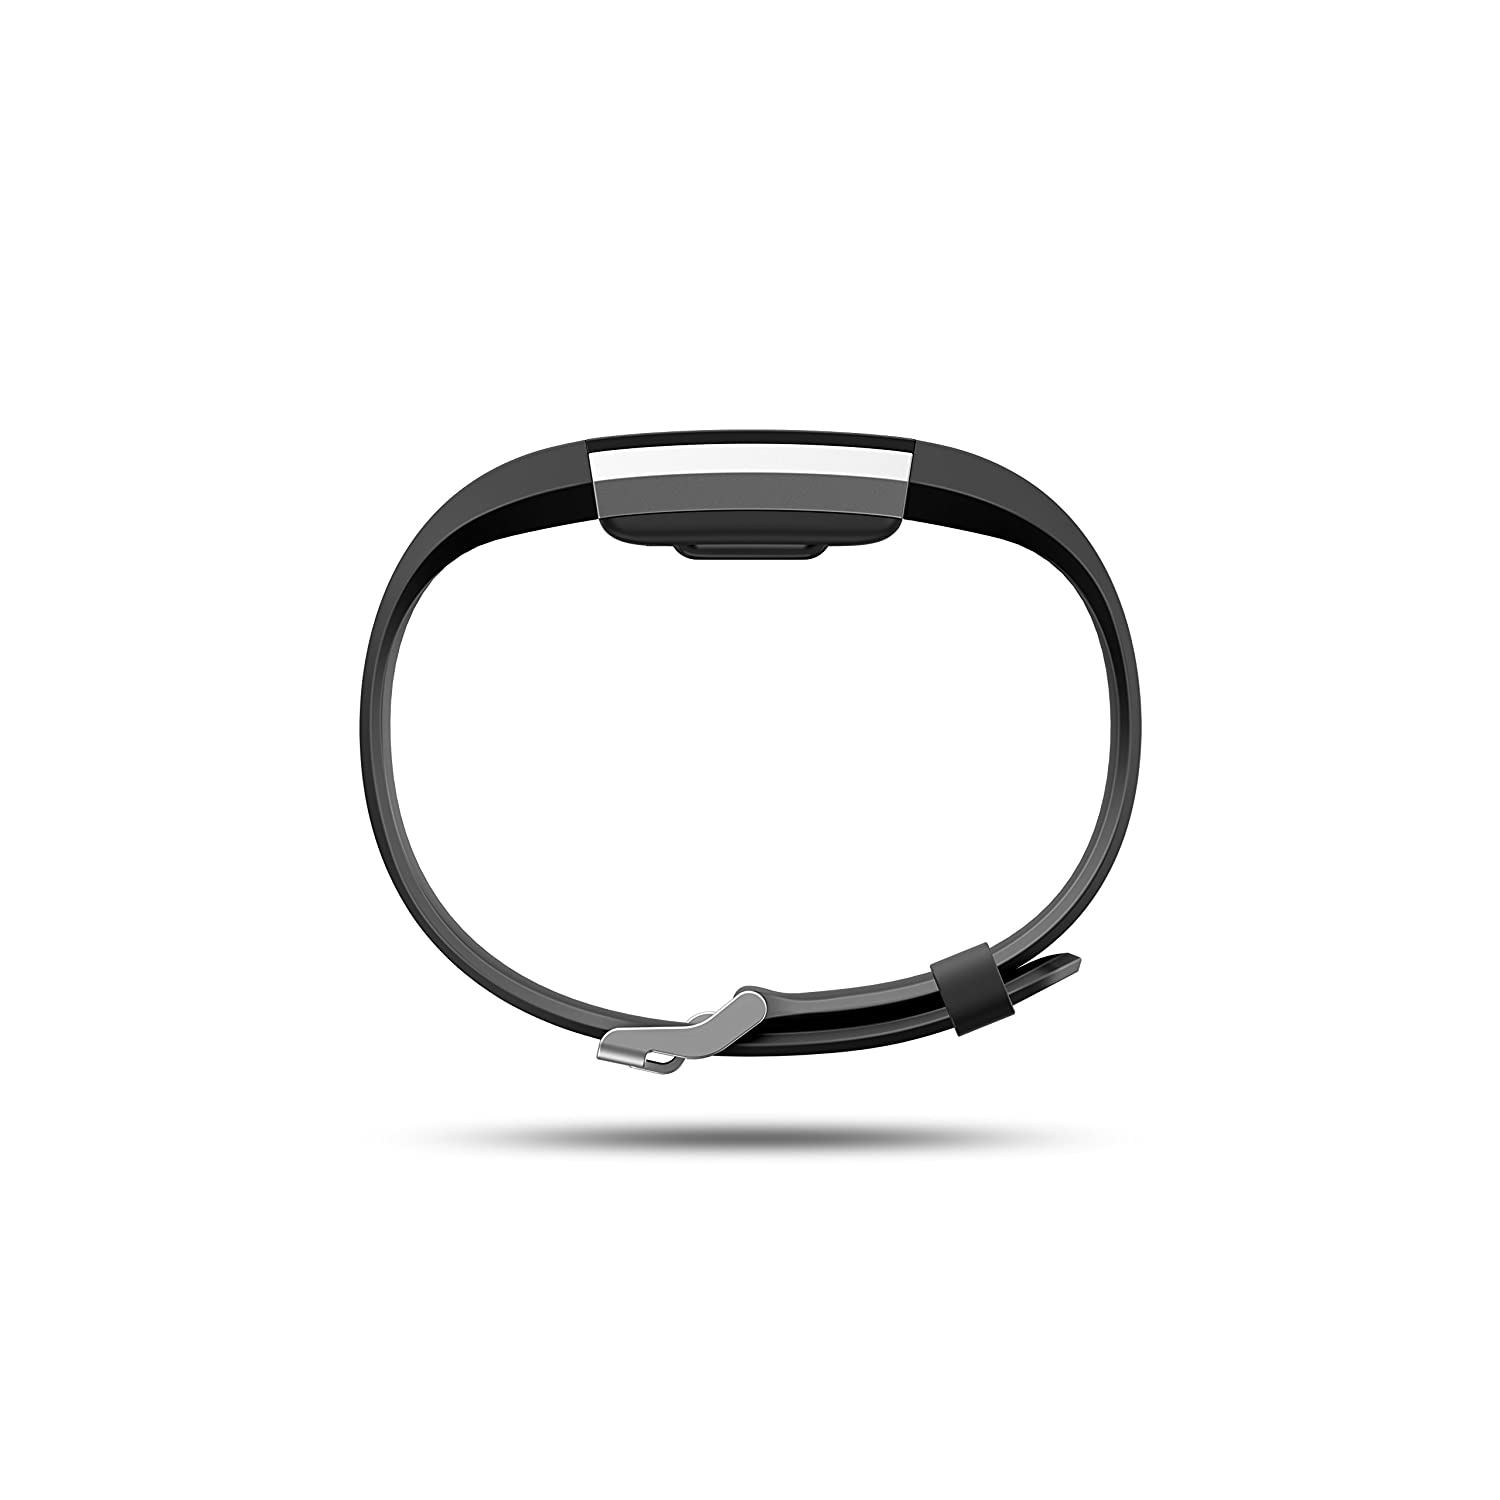 Fitbit Charge 2 Heart Rate Fitness Wristband, Black, Large US Version , 1 Count